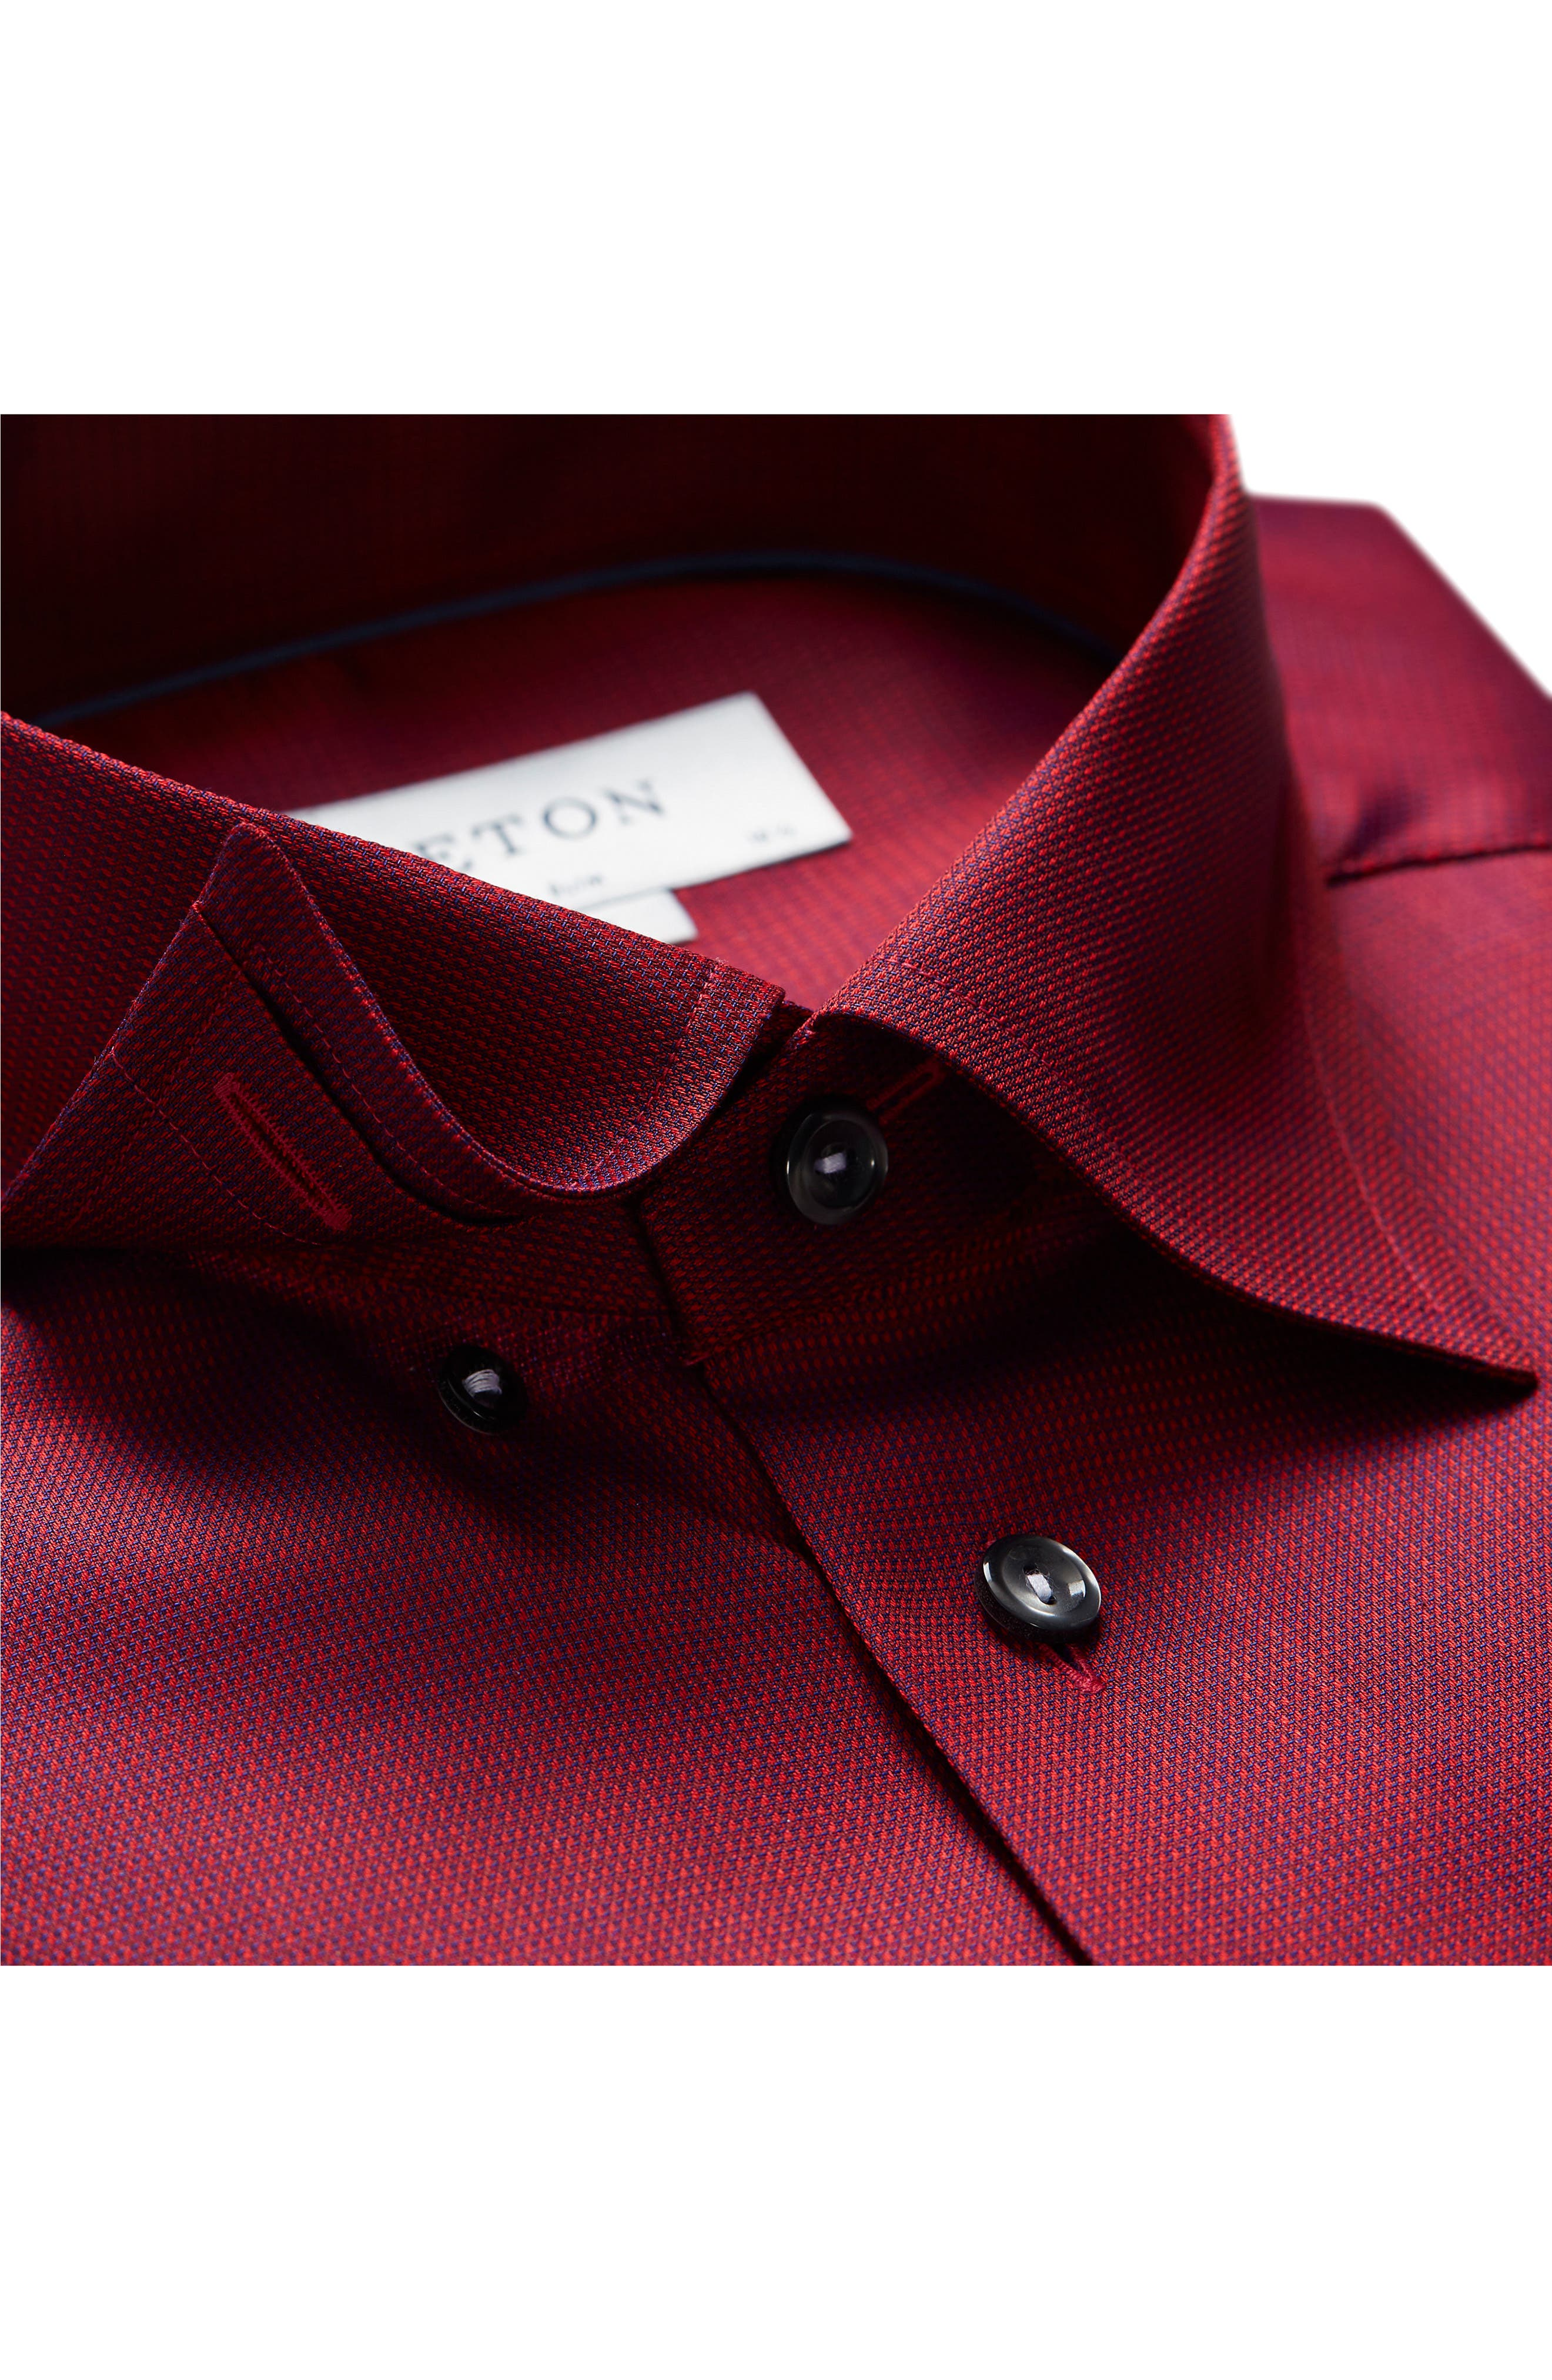 Slim Fit Solid Dress Shirt,                             Alternate thumbnail 2, color,                             Red